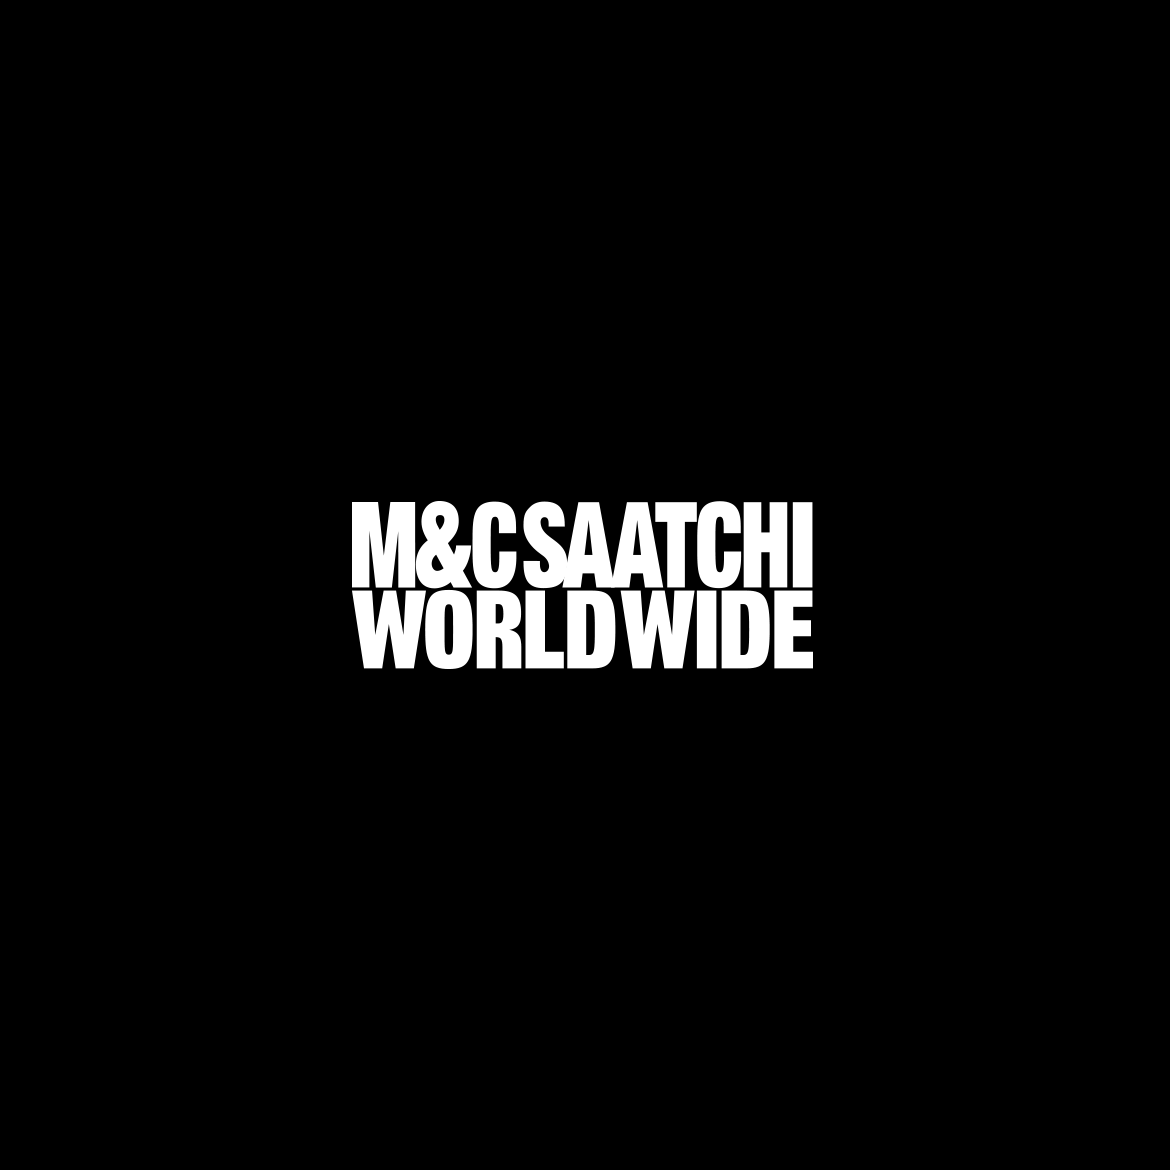 M&C Saatchi Worldwide